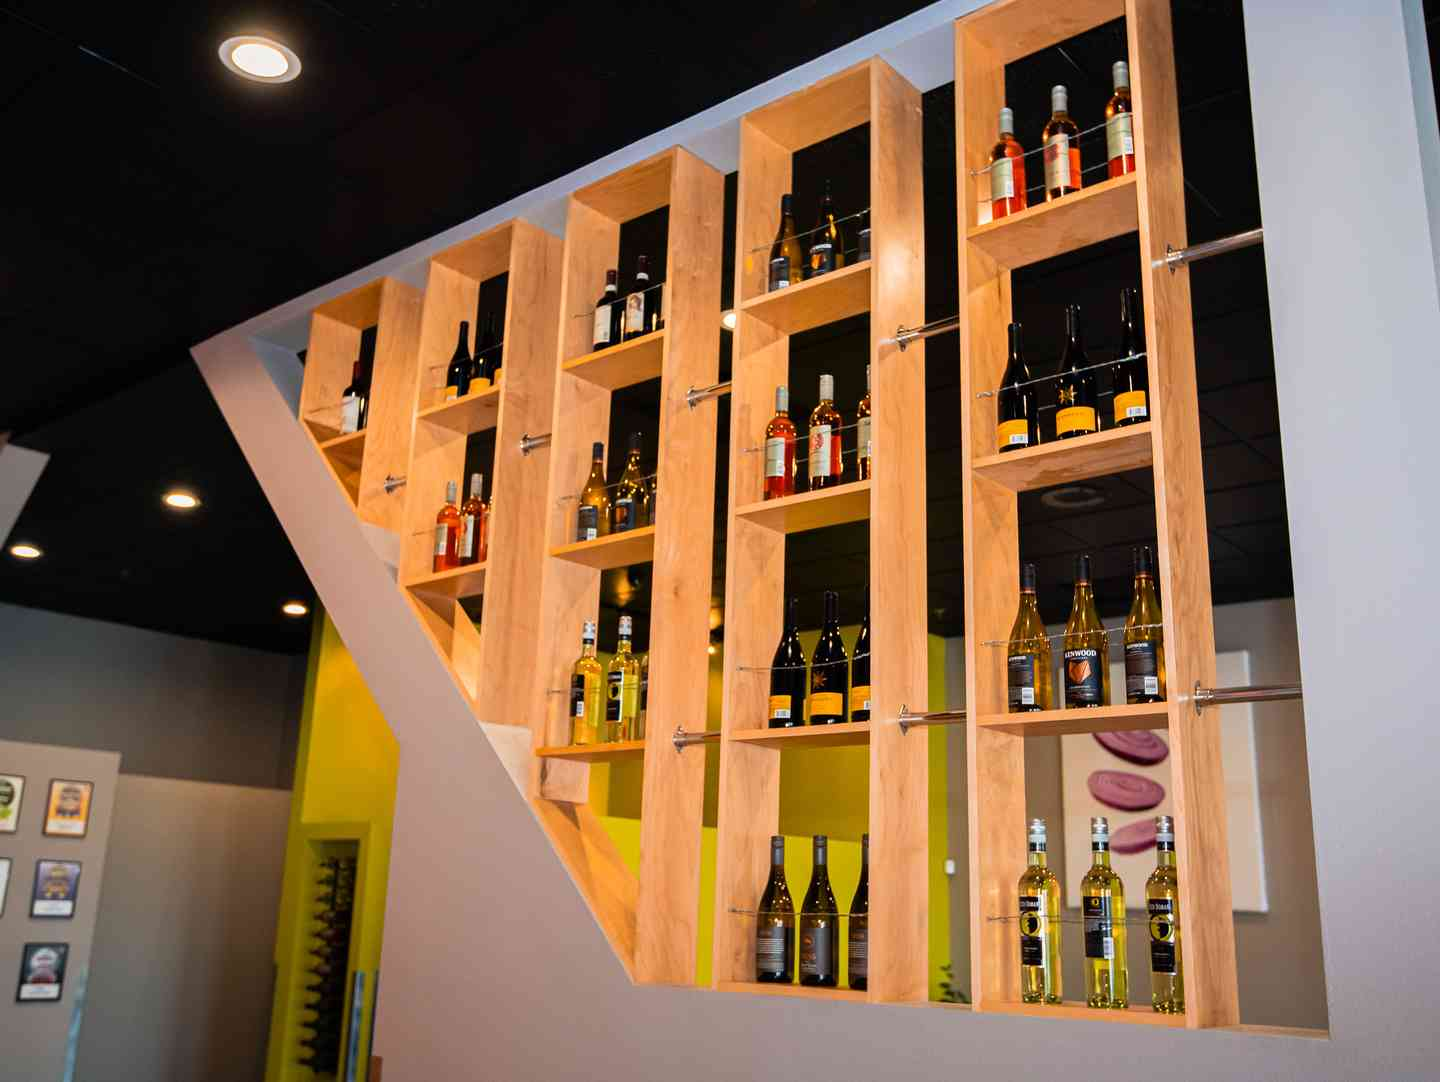 Interior decorative wall with many shelves lined with wine bottles